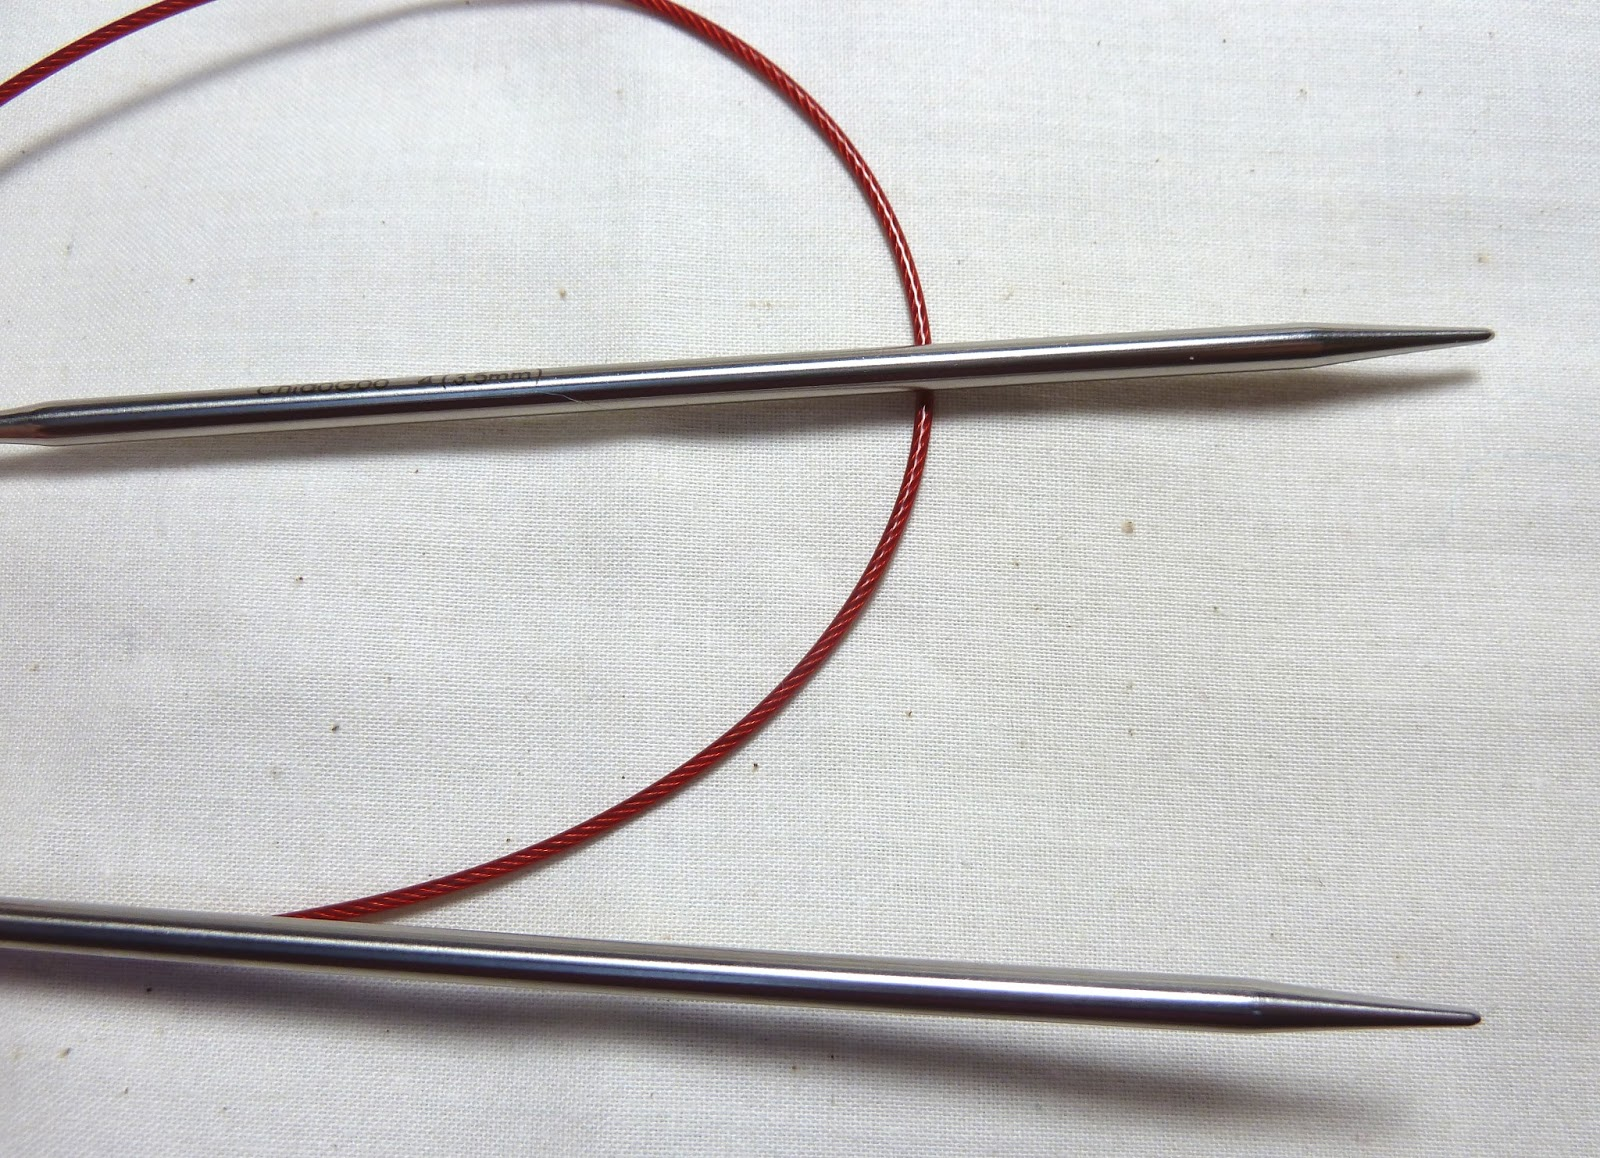 Knitting Needles Not Long Enough : Circular knitting needle comparison